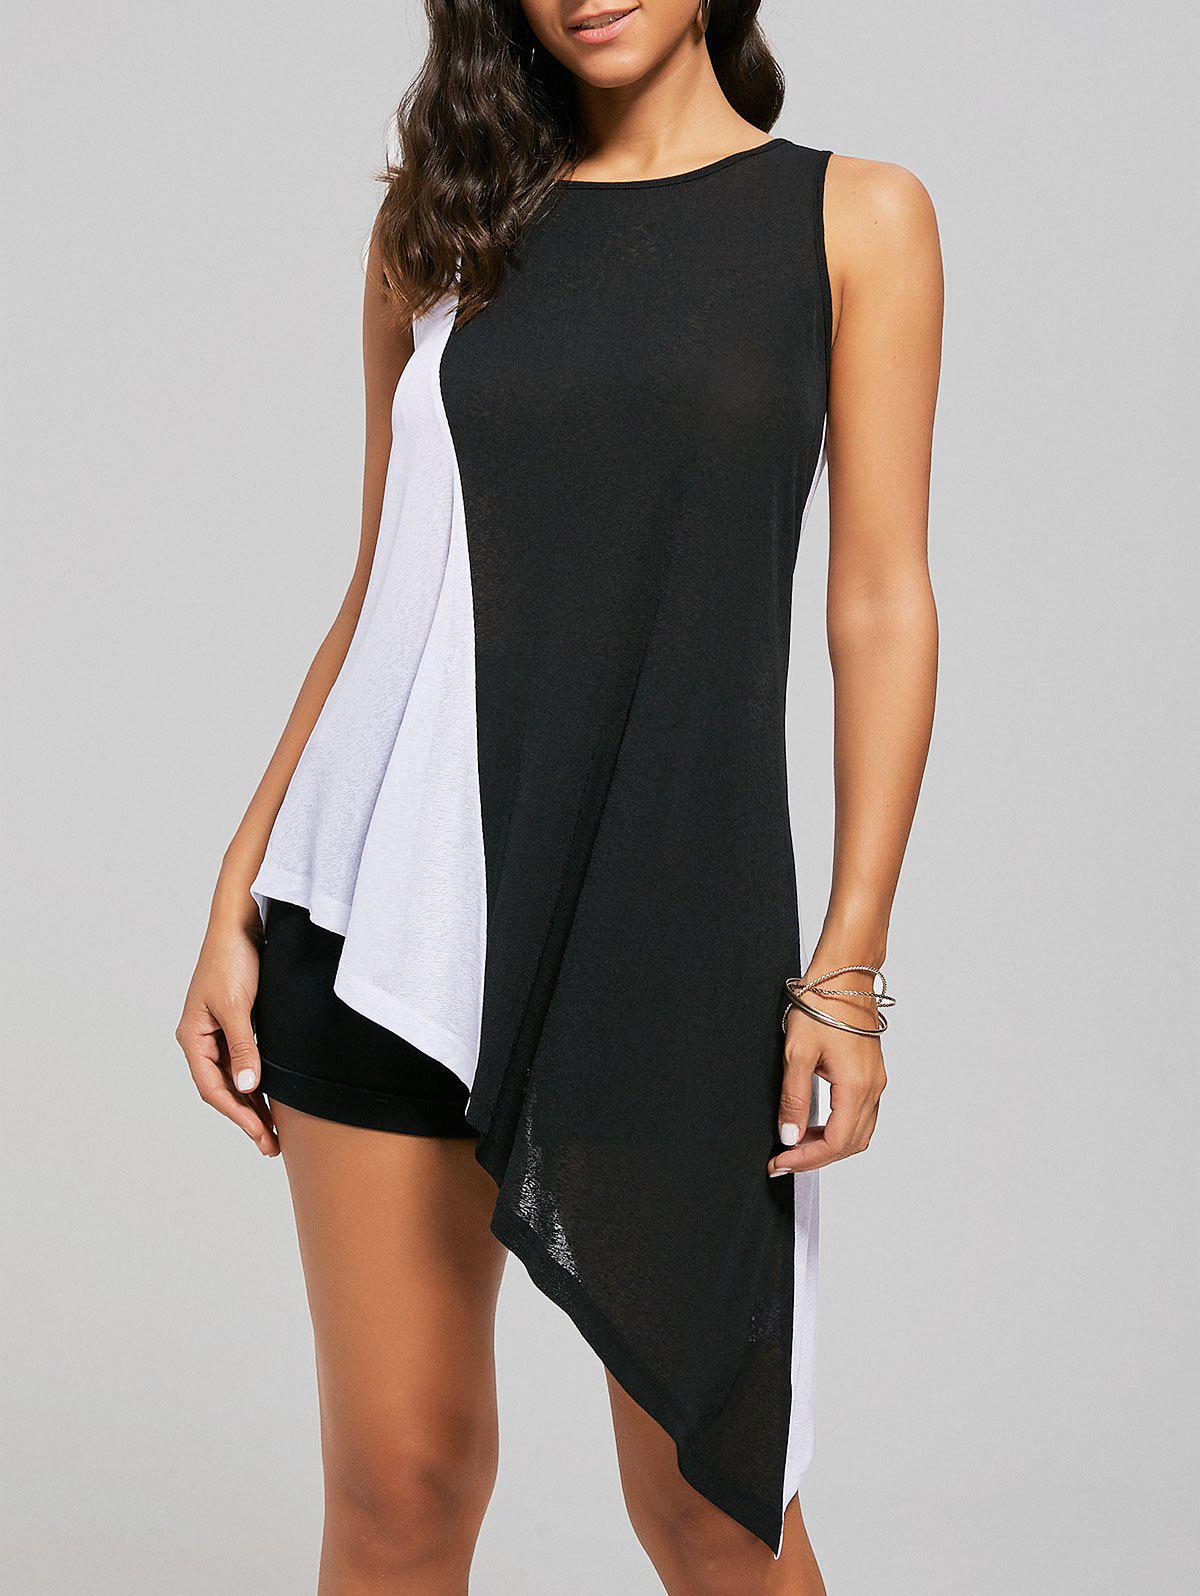 Colorblock Asymmetrical Tunic TopWOMEN<br><br>Size: XL; Color: WHITE AND BLACK; Material: Polyester; Shirt Length: Long; Pattern Type: Patchwork; Style: Fashion; Weight: 0.2000kg; Package Contents: 1 x Tank Top;